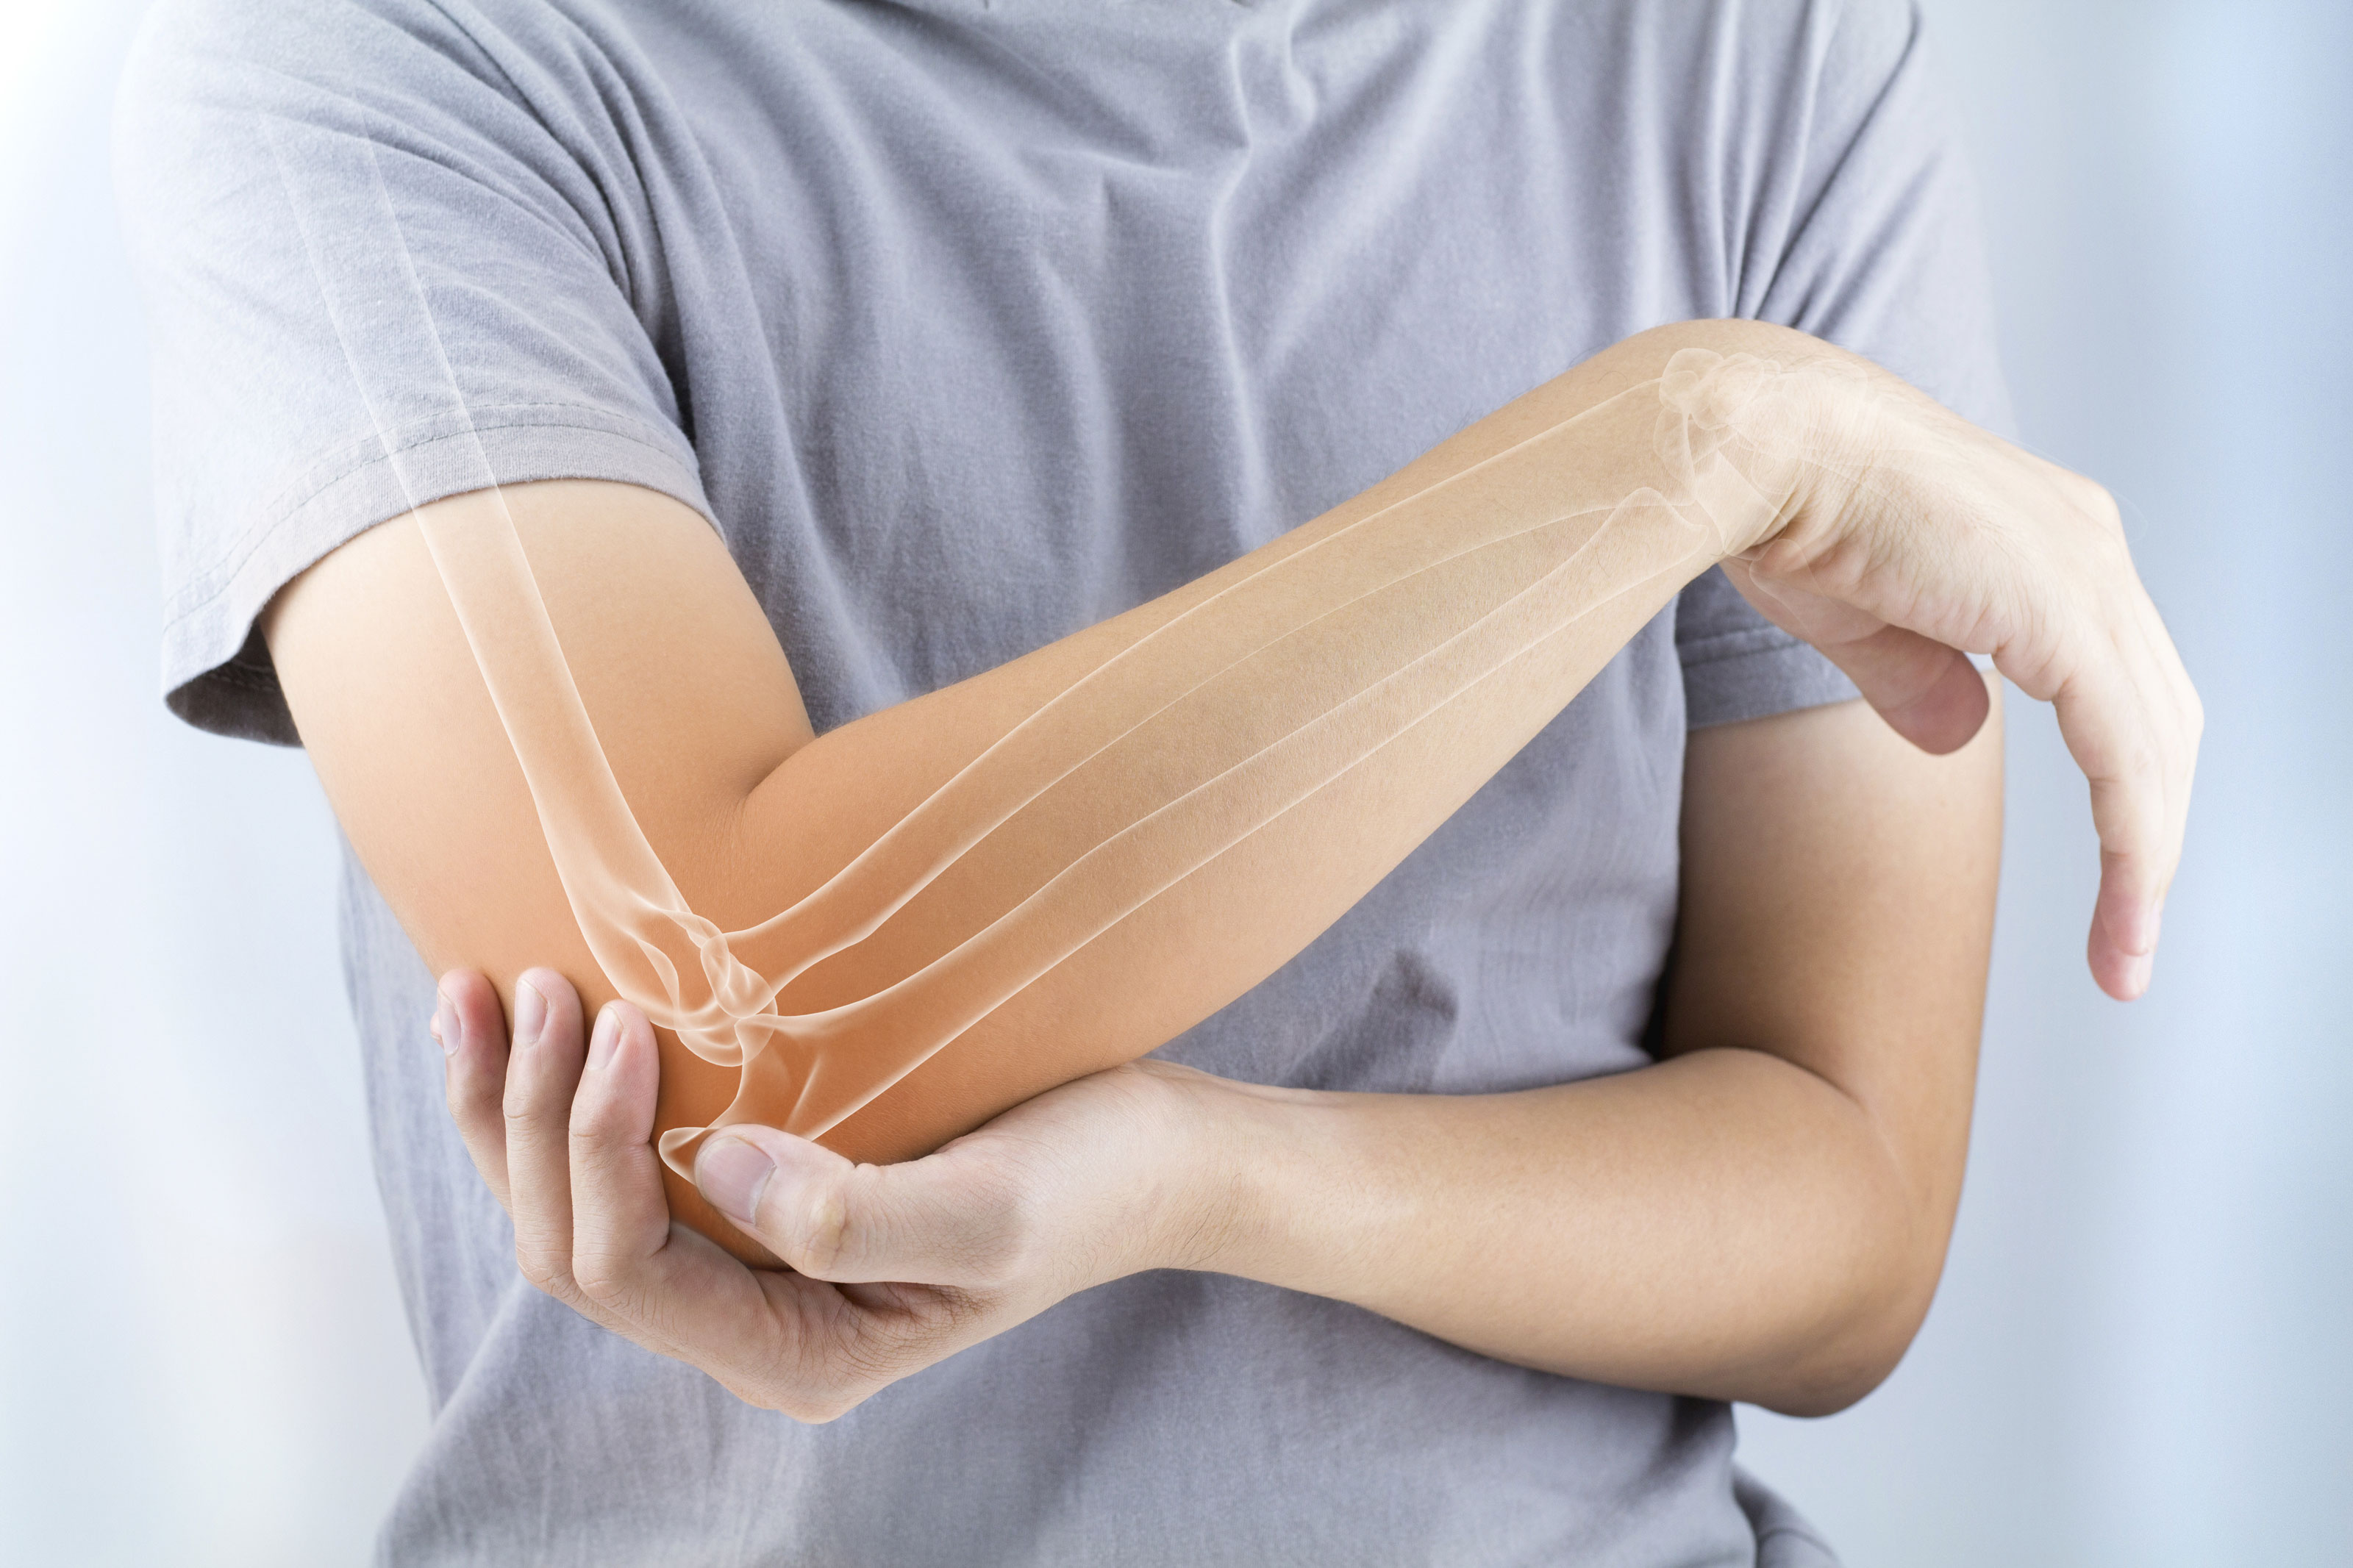 Elbow pain treatment without surgery or pills